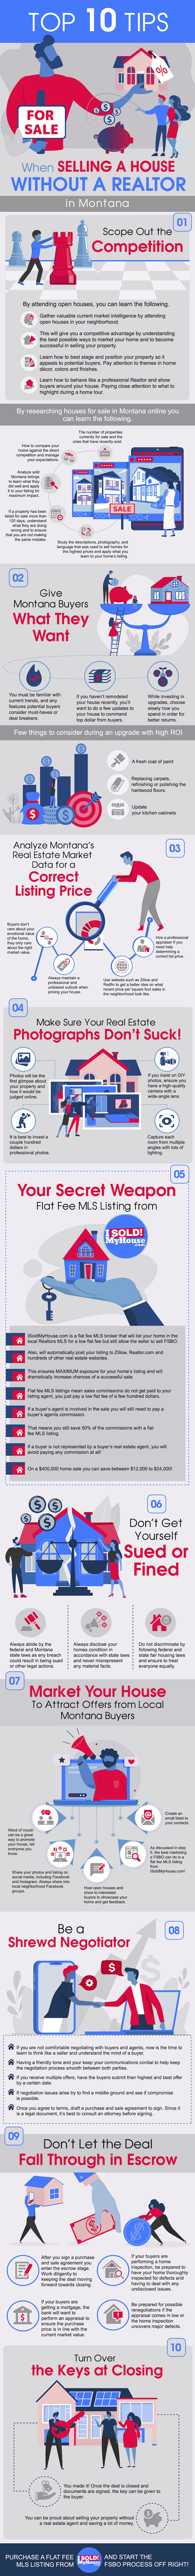 infographic of the 10 steps to sell a house in montana without an agent